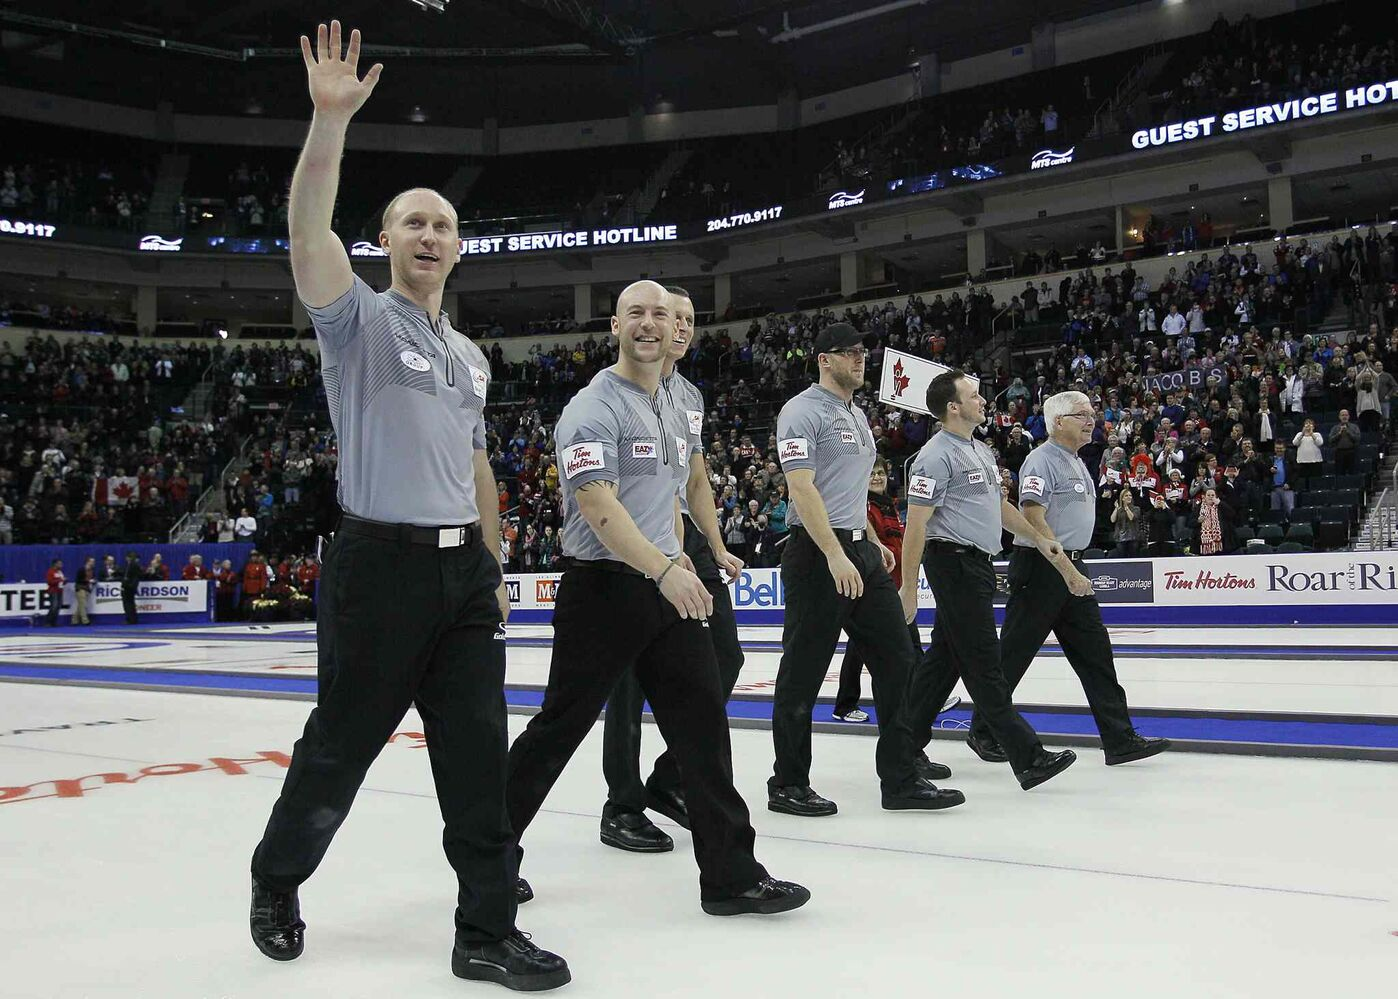 Skip Brad Jacobs (left) and his team acknowledge the crowd as they make their way down the ice after winning the final. (John Woods / The Canadian Press)